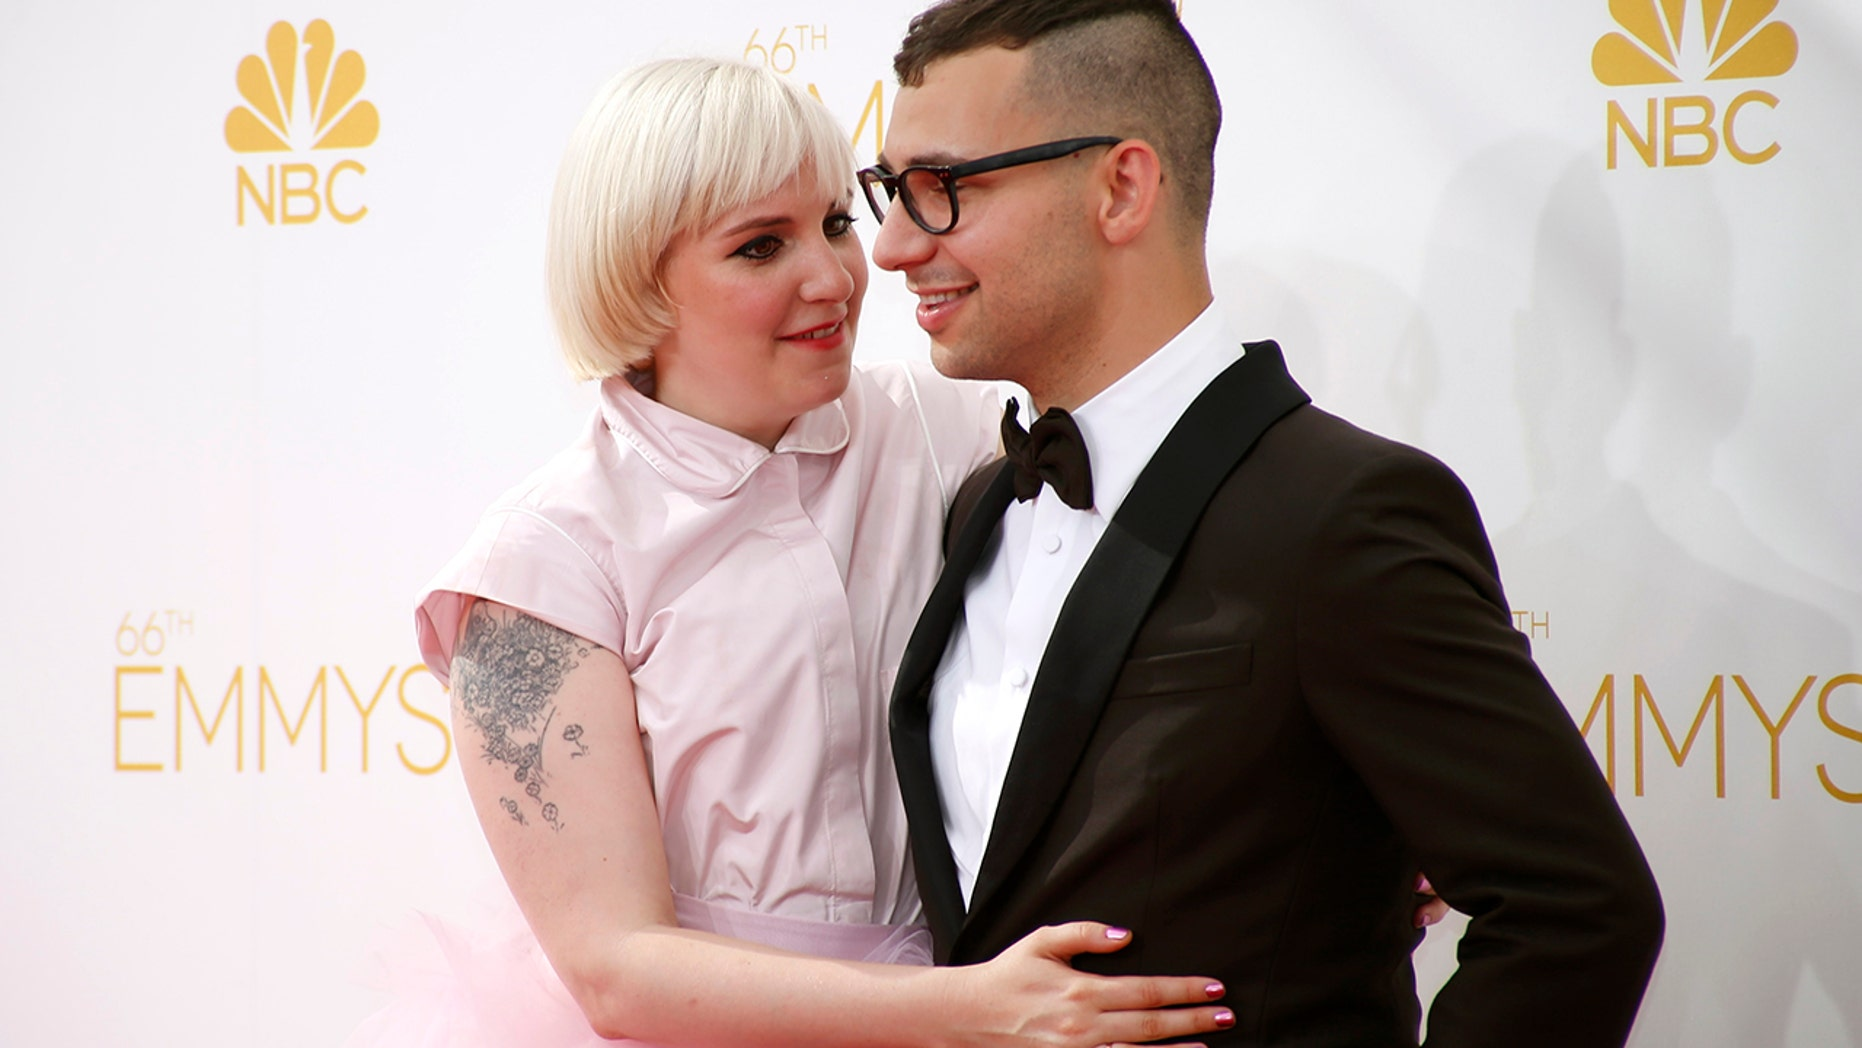 On Sunday, Lena Dunham shared a list of baby names she made with ex Jack Antonoff back in 2015.